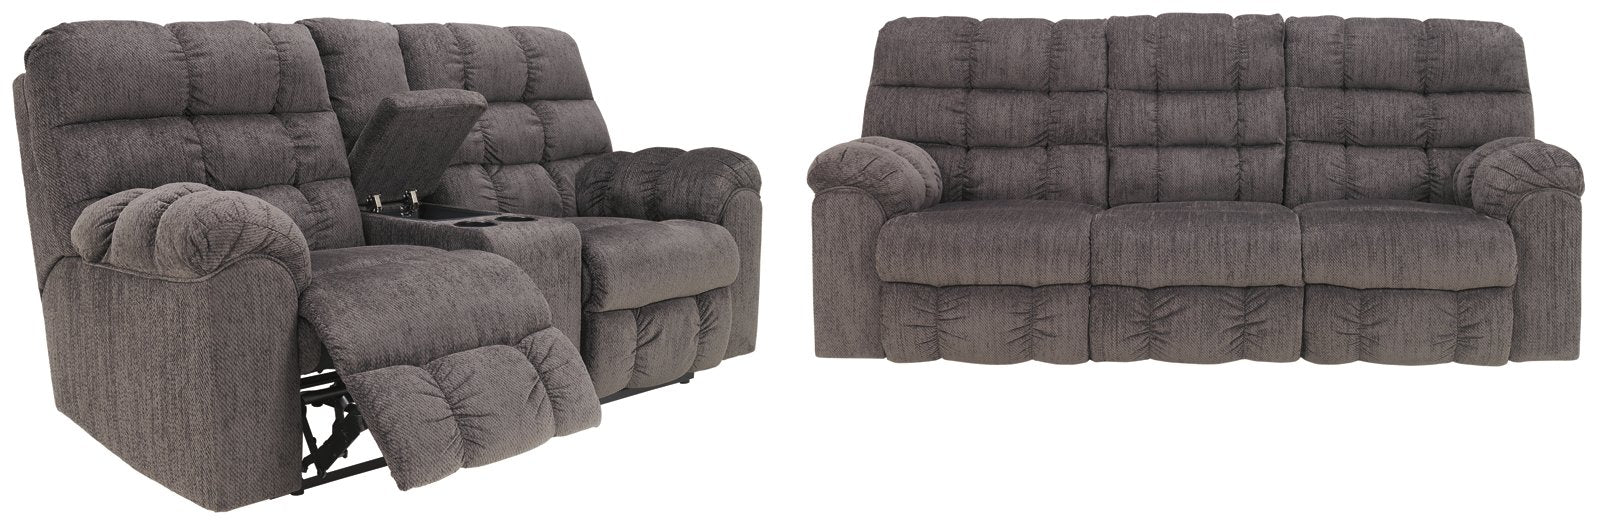 Acieona Signature Design 2-Piece Living Room Set image